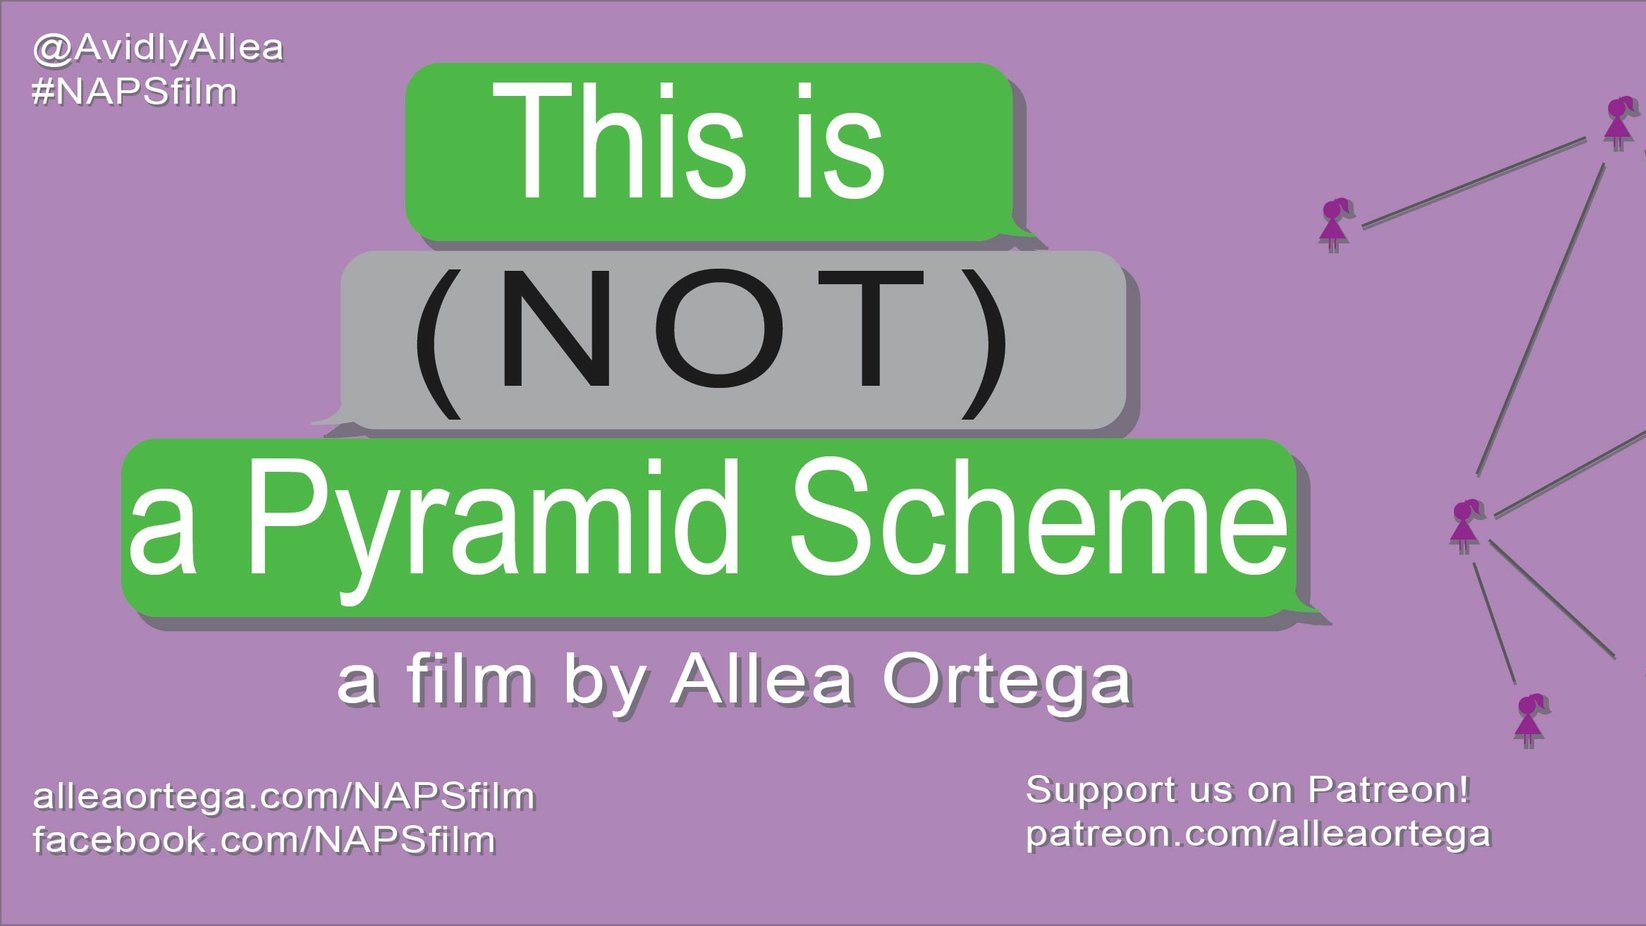 This is (NOT) a Pyramid Scheme - This documentary explores multilevel marketing in America through the eyes of the women who participate in it. Both critical and optimistic, this film seeks to provide a balanced representation of the topic while exploring the underlying truths that unite these women. SUPPORT ON PATREON patreon.com/alleaortega